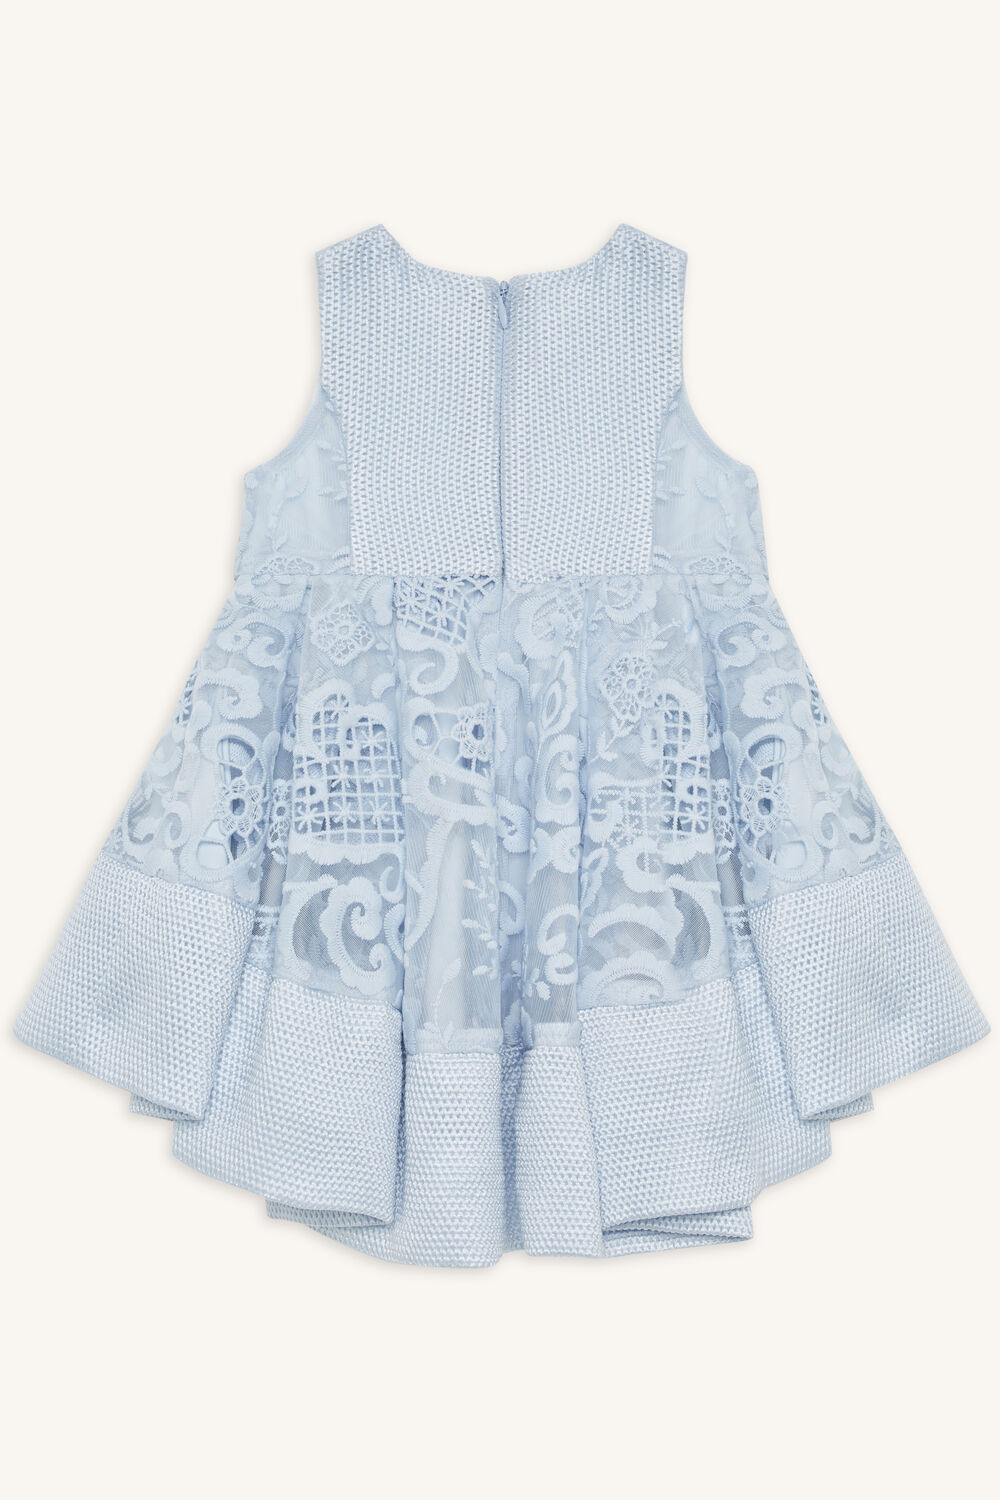 BABY GIRL AVA STARLET DRESS in colour BALLAD BLUE